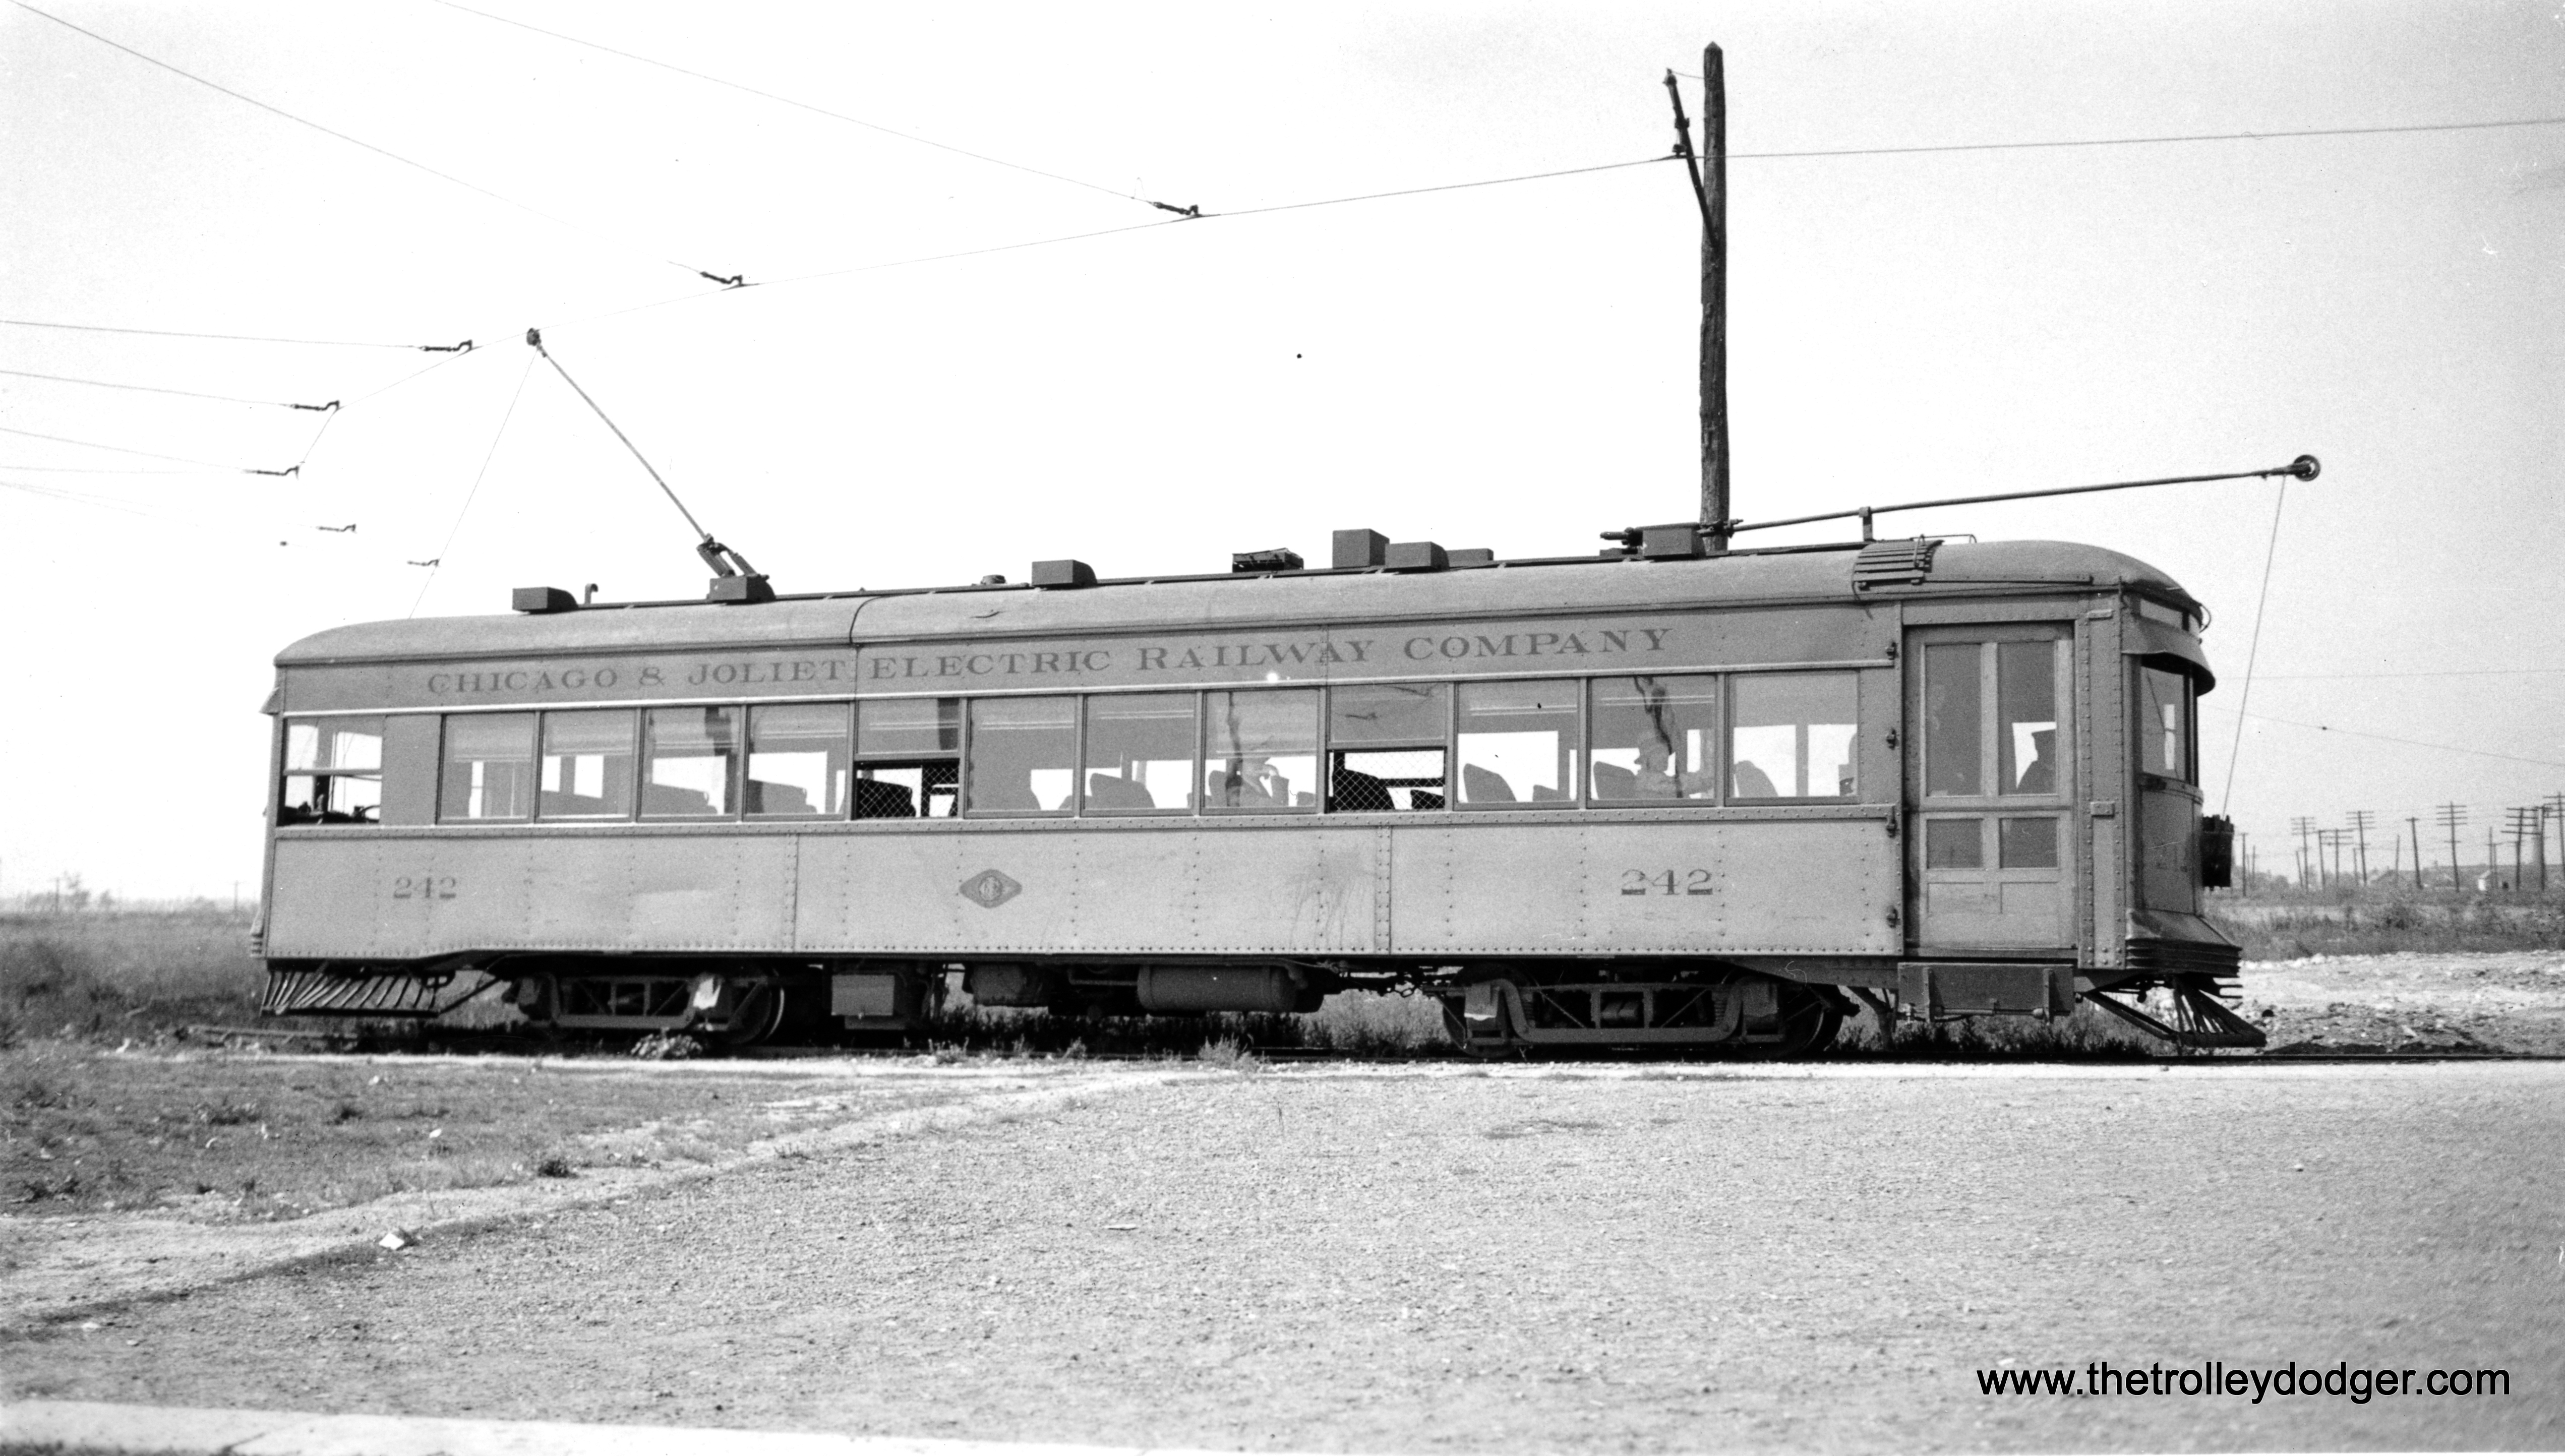 Chicago & Joliet Electric – The Trolley Dodger